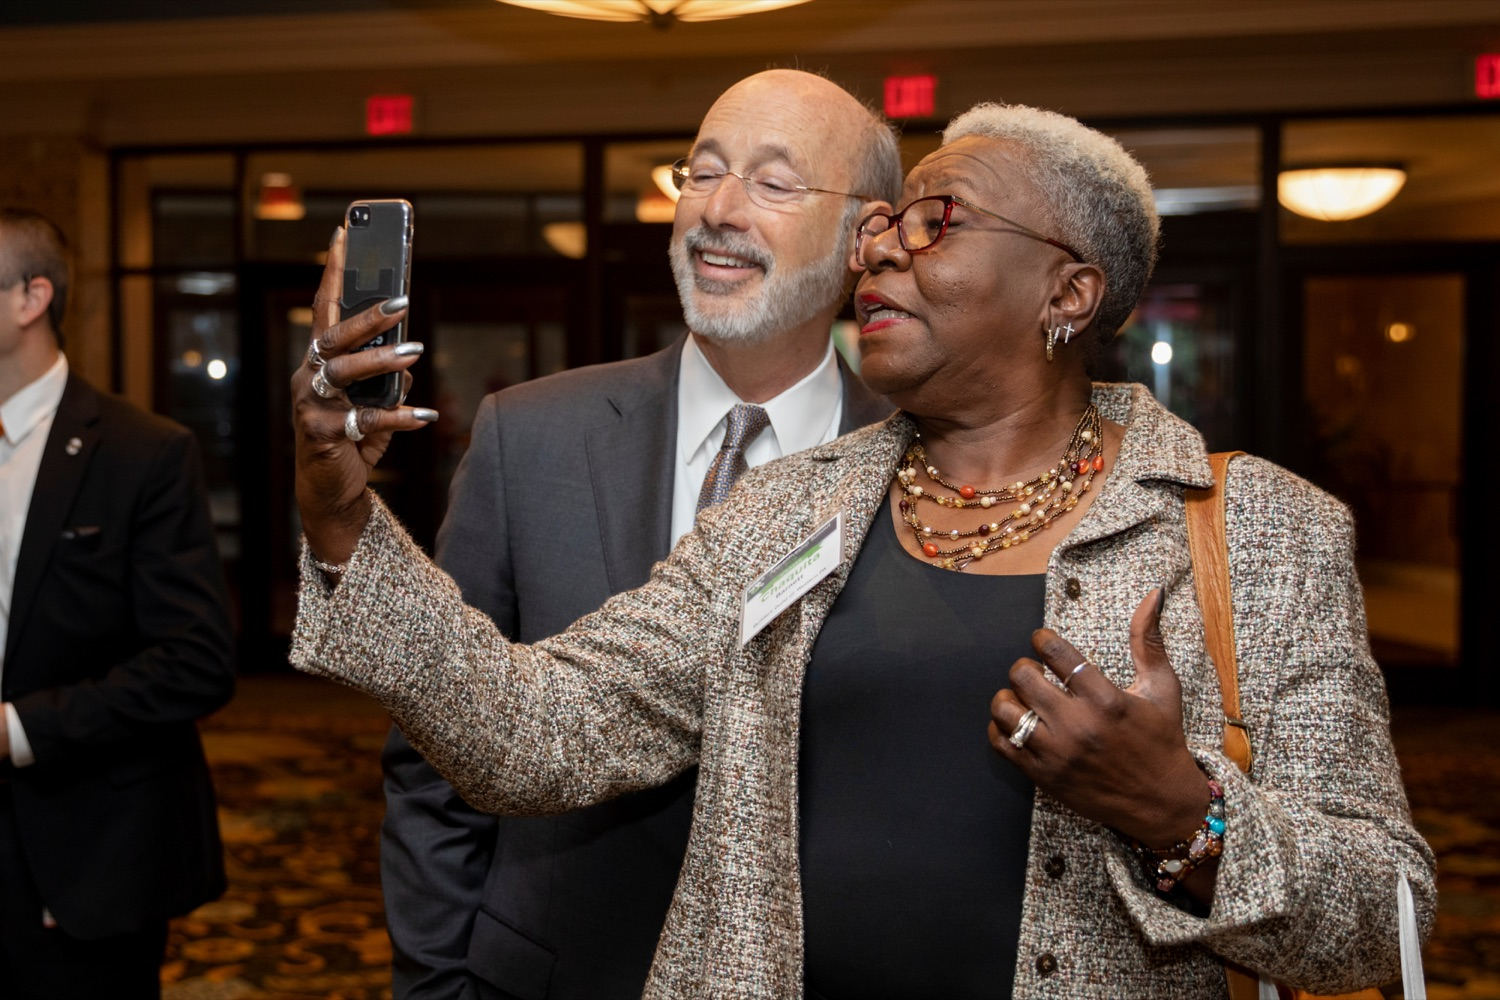 "<a href=""http://filesource.abacast.com/commonwealthofpa/photo/17520_LandI_Apprenticeships_NK_005.JPG"" target=""_blank"">⇣ Download Photo<br></a>Pennsylvania Governor Tom Wolf takes a selfie with Chaquita Barnett, of Builders Guild of Western Pennsylvania, during the 2019 Pennsylvania Apprenticeship Summit at Hershey Lodge on Thursday, October 31, 2019."